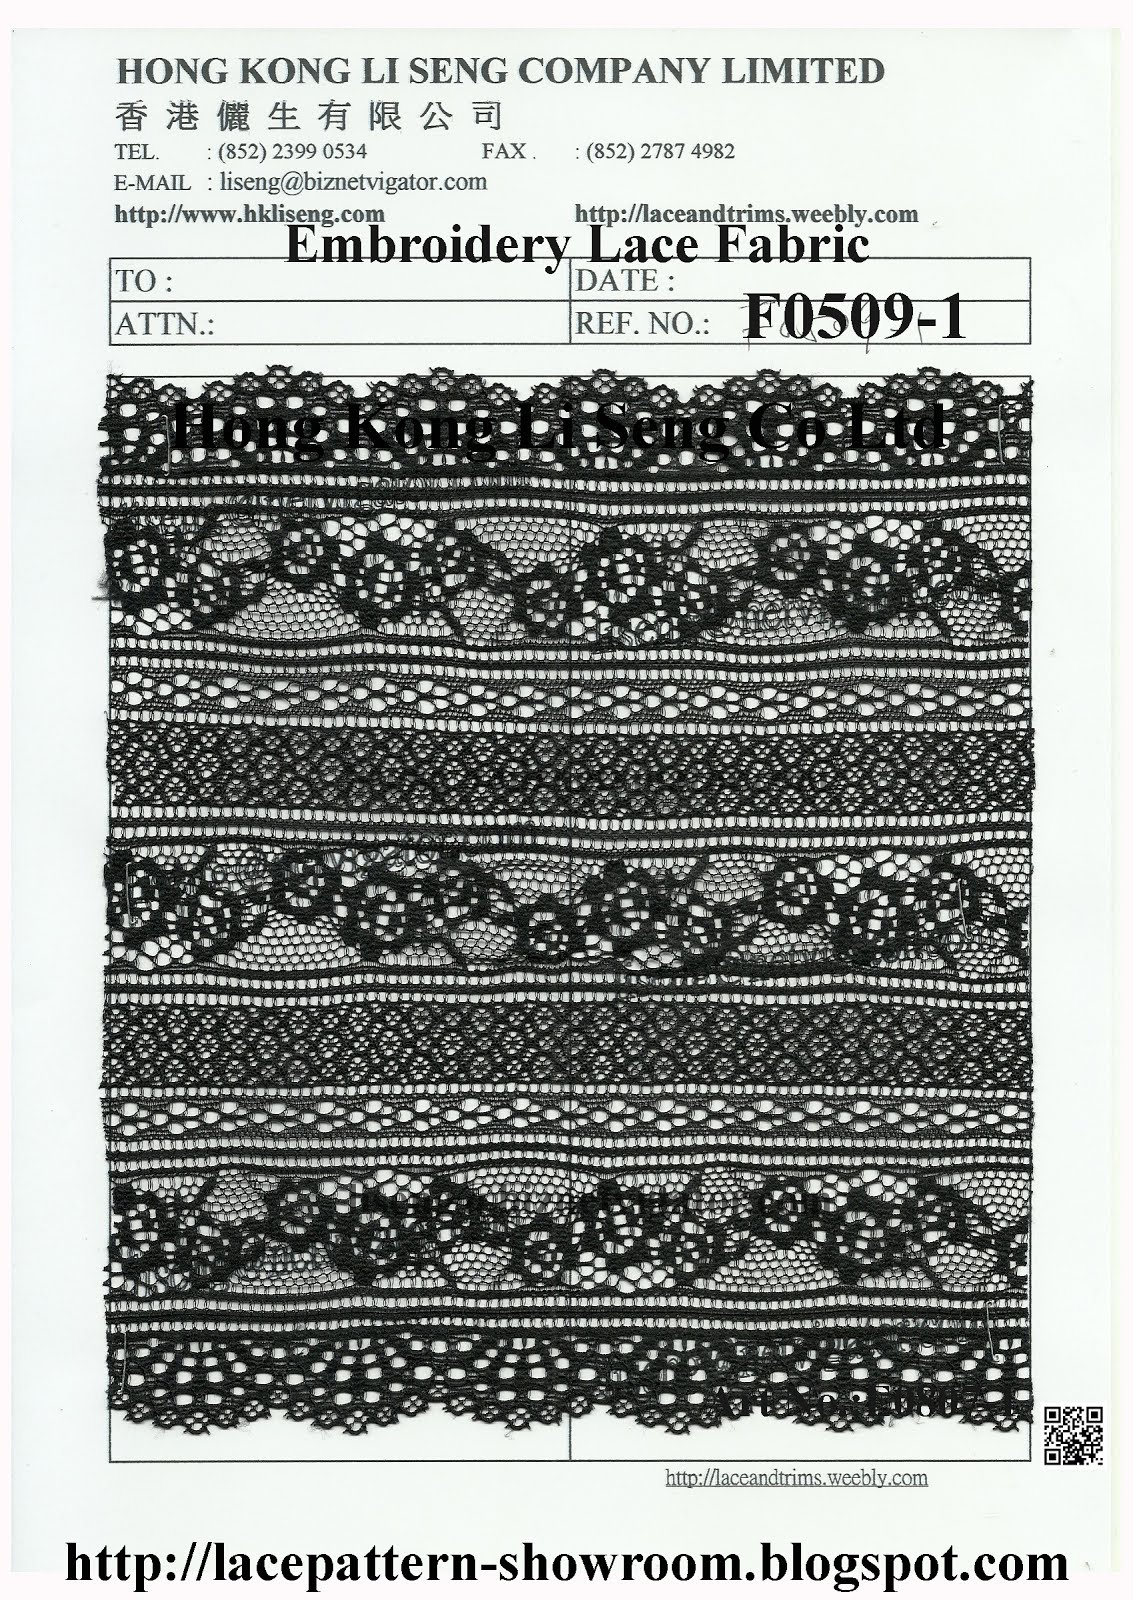 New Embroidered Lace Trims Pattern Art No.:F0509-1